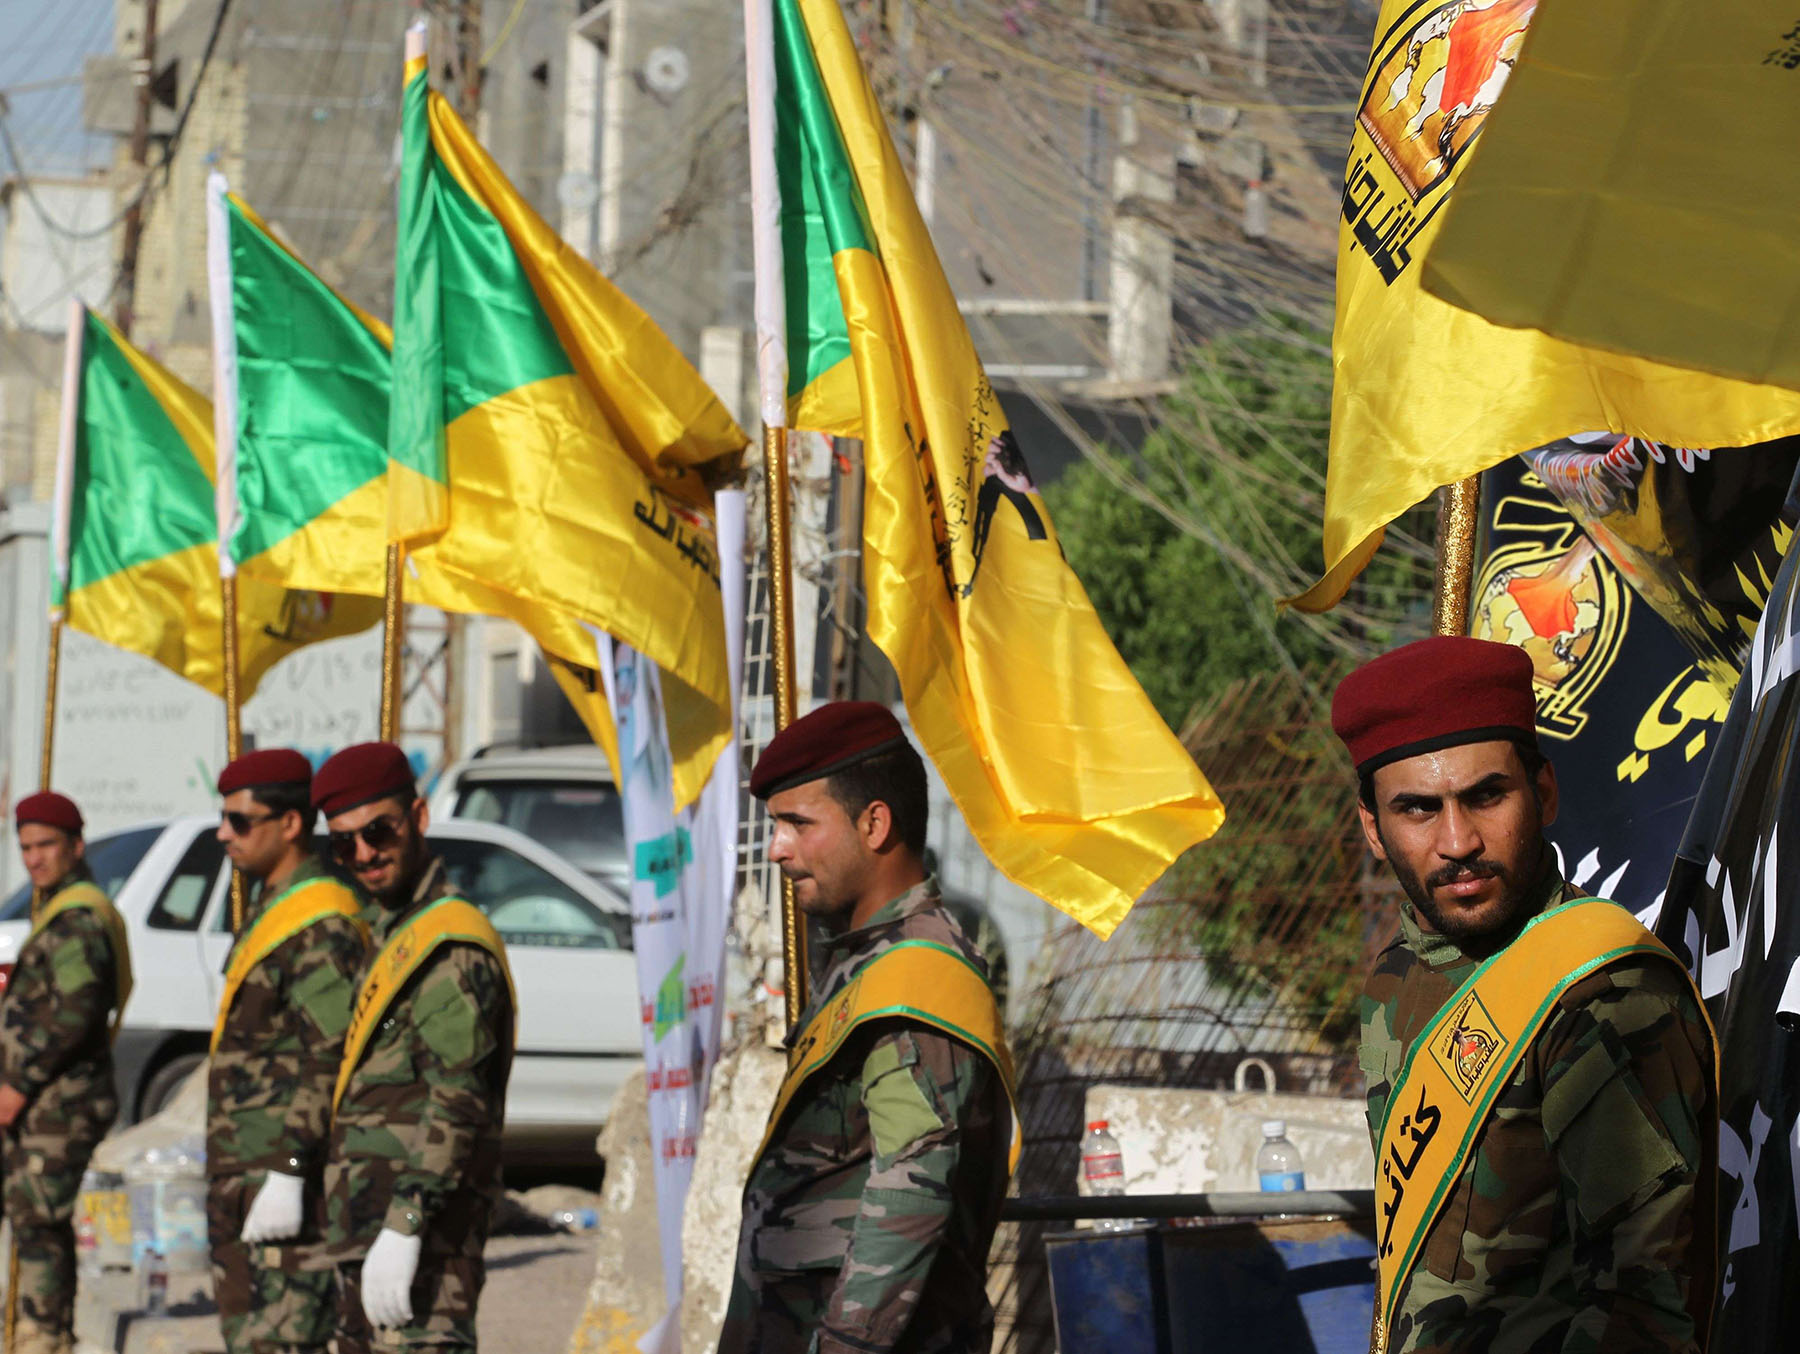 A file picture shows Members of the Iraqi Katai'b Hezbollah during a march in Baghdad. (AFP)